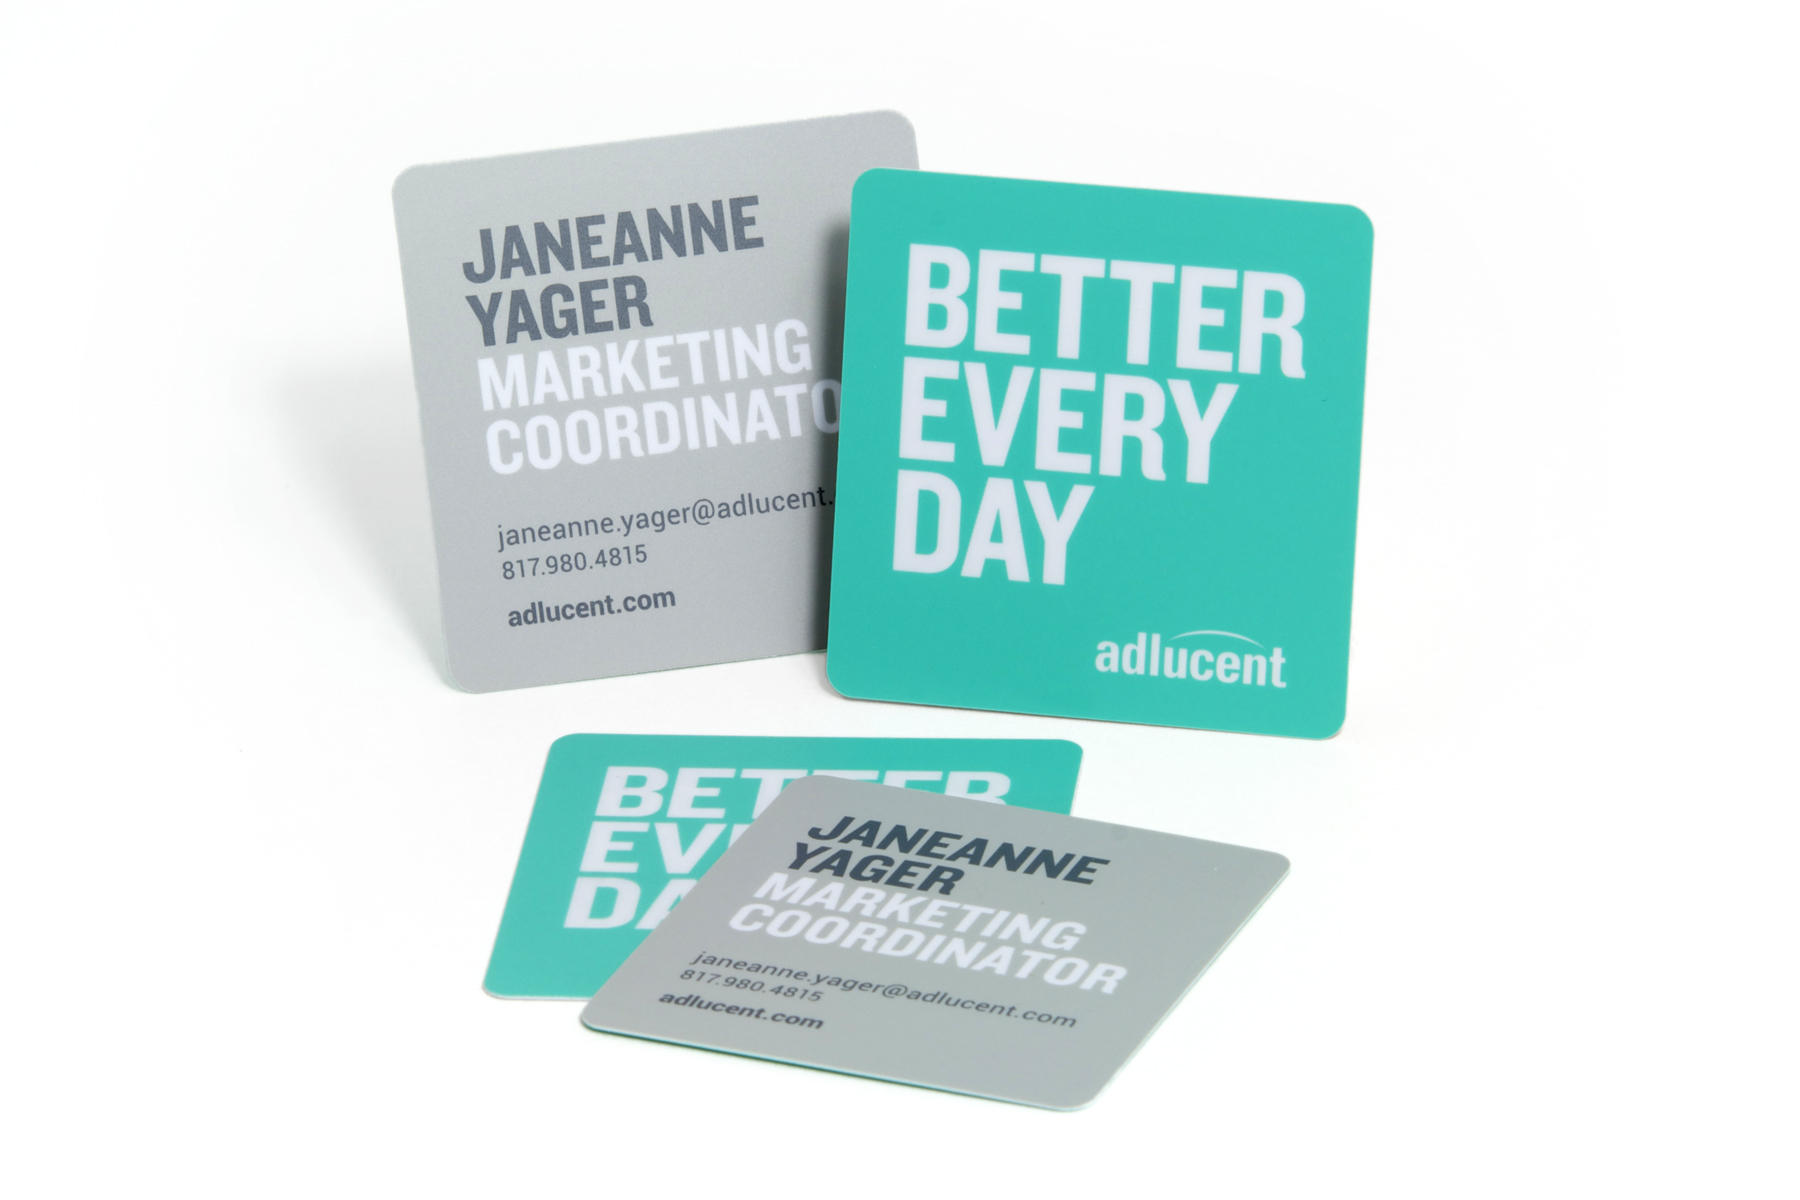 Translucent Business Cards Make Plastic a Great Choice